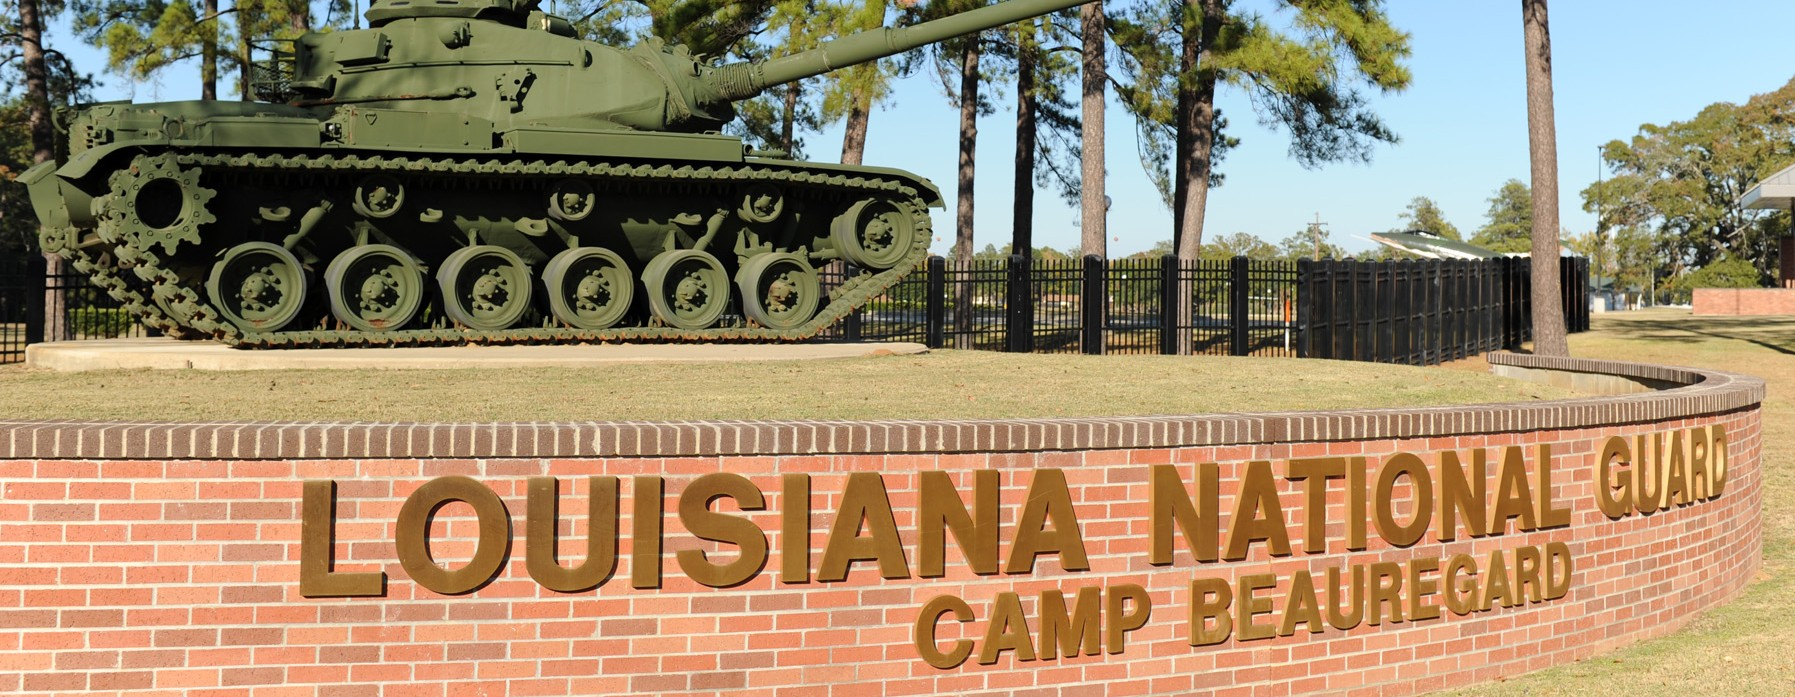 The main gate at Louisiana Army National Guard installation Camp Beauregard, Louisiana, one of 10 Army posts named for Confederate officers. (Louisiana Army National Guard)